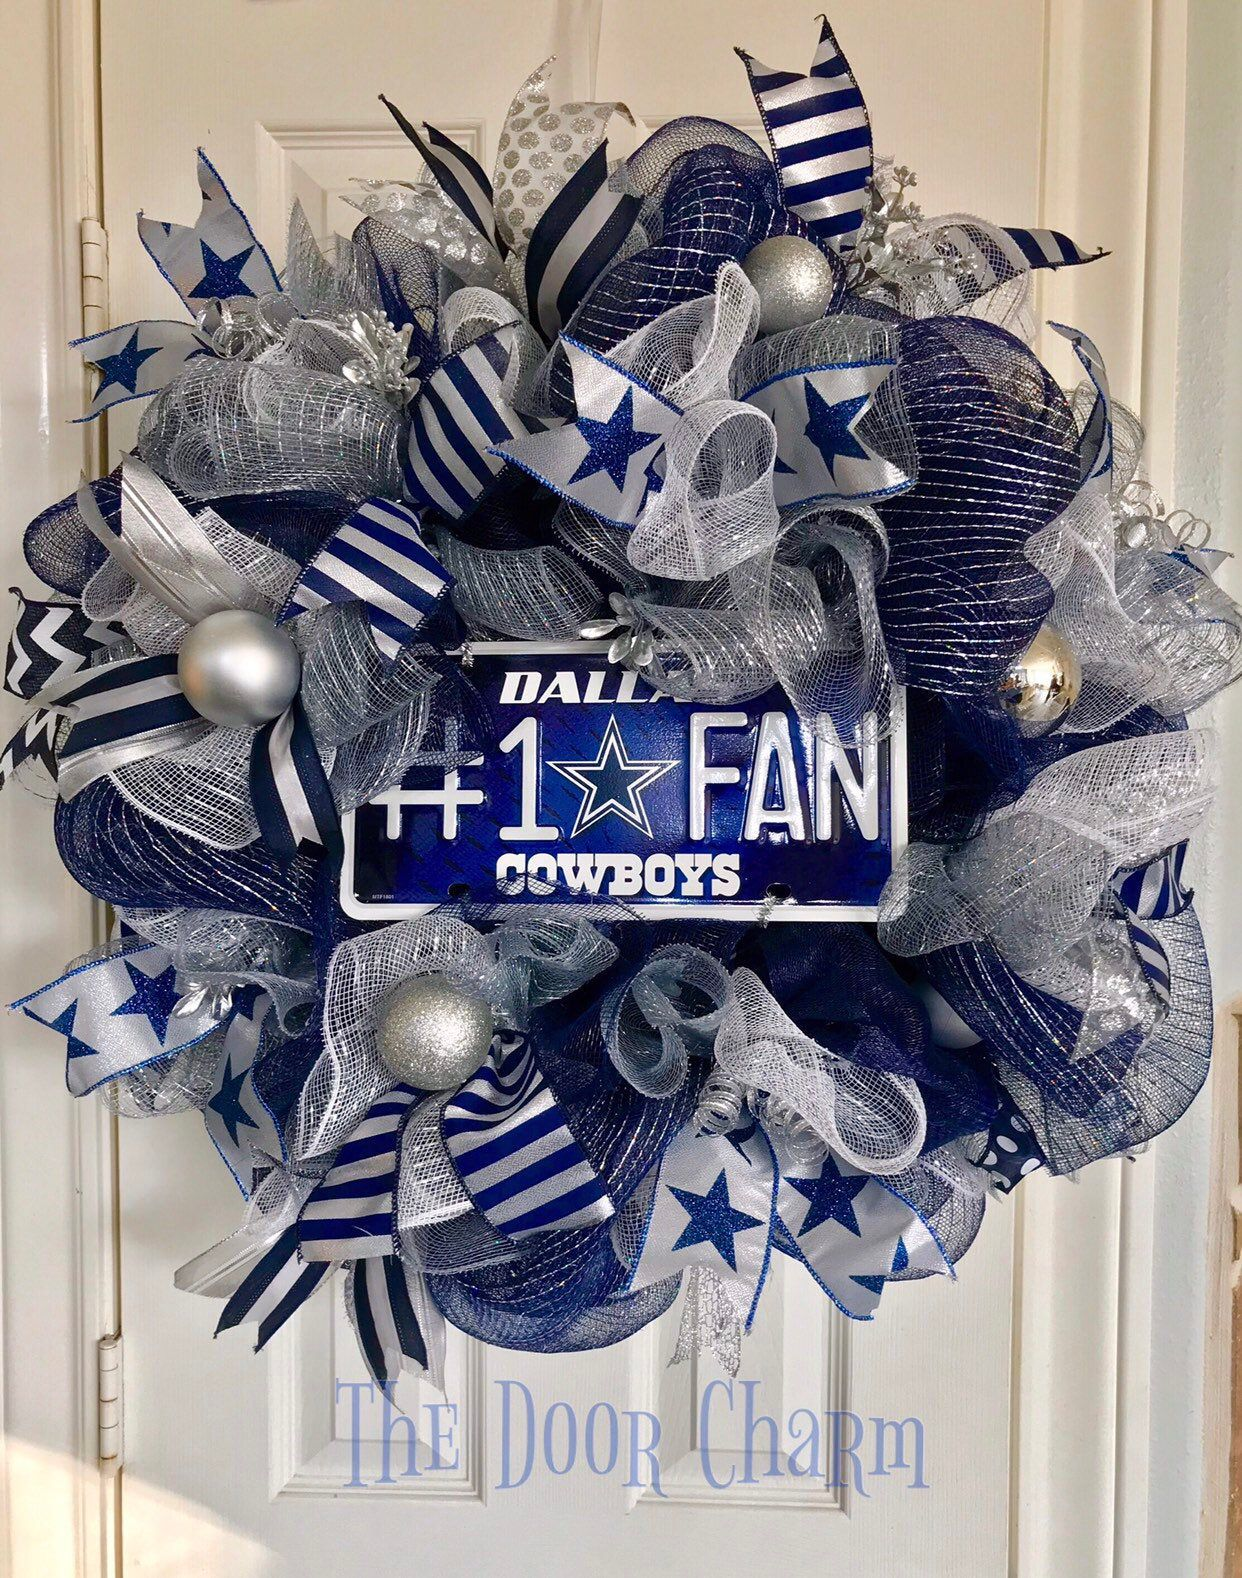 Christmas In Dallas 2020 Free Dallas Cowboys Wreath Deluxe Dallas Cowboys deco mesh wreath